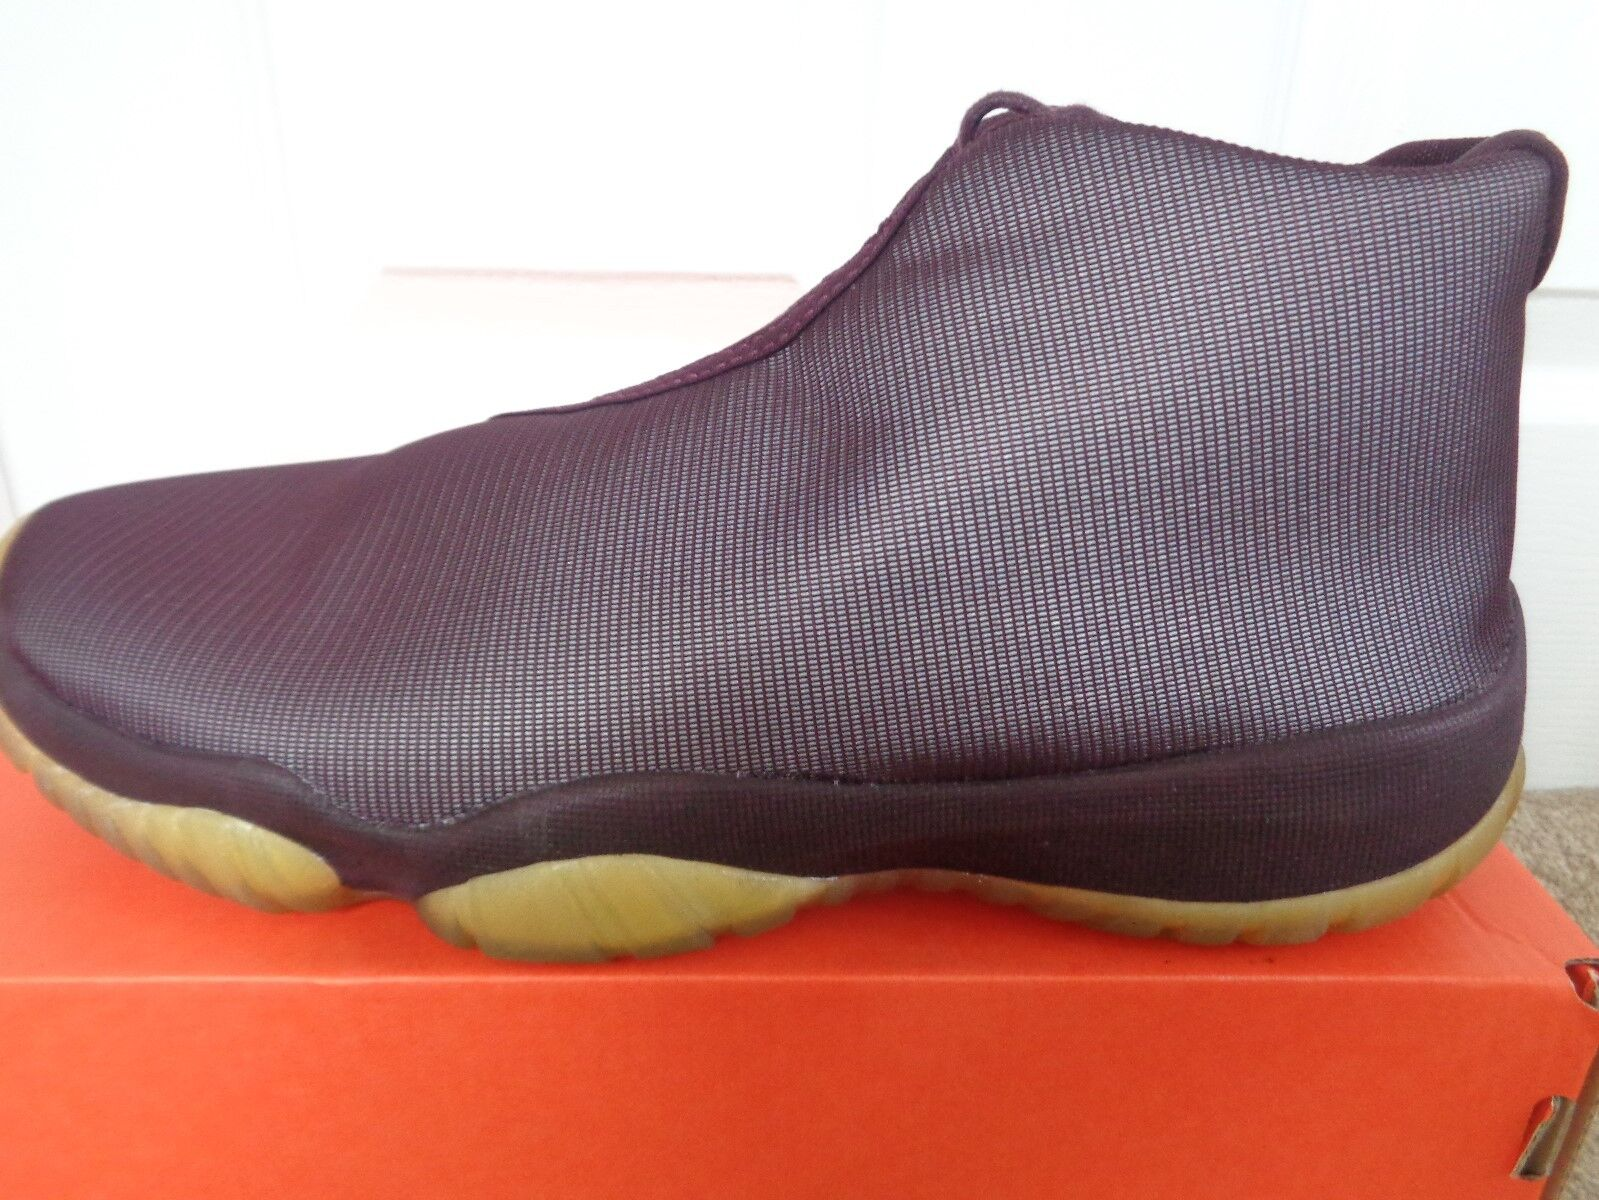 Nike Air Jordan future low trainers shoes 656503 670 uk 9 eu 44 us 10 NEW+BOX